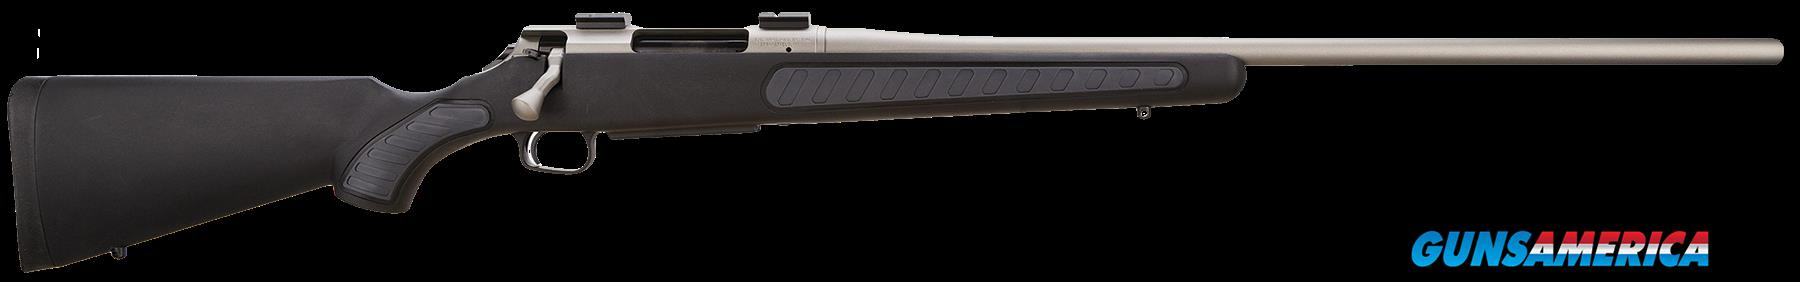 "T/C Arms 10175436 Venture Bolt 22-250 Rem 22"" 3+1 Synthetic w/Rubber Panels Black Stk Silver Weather  Guns > Rifles > TU Misc Rifles"